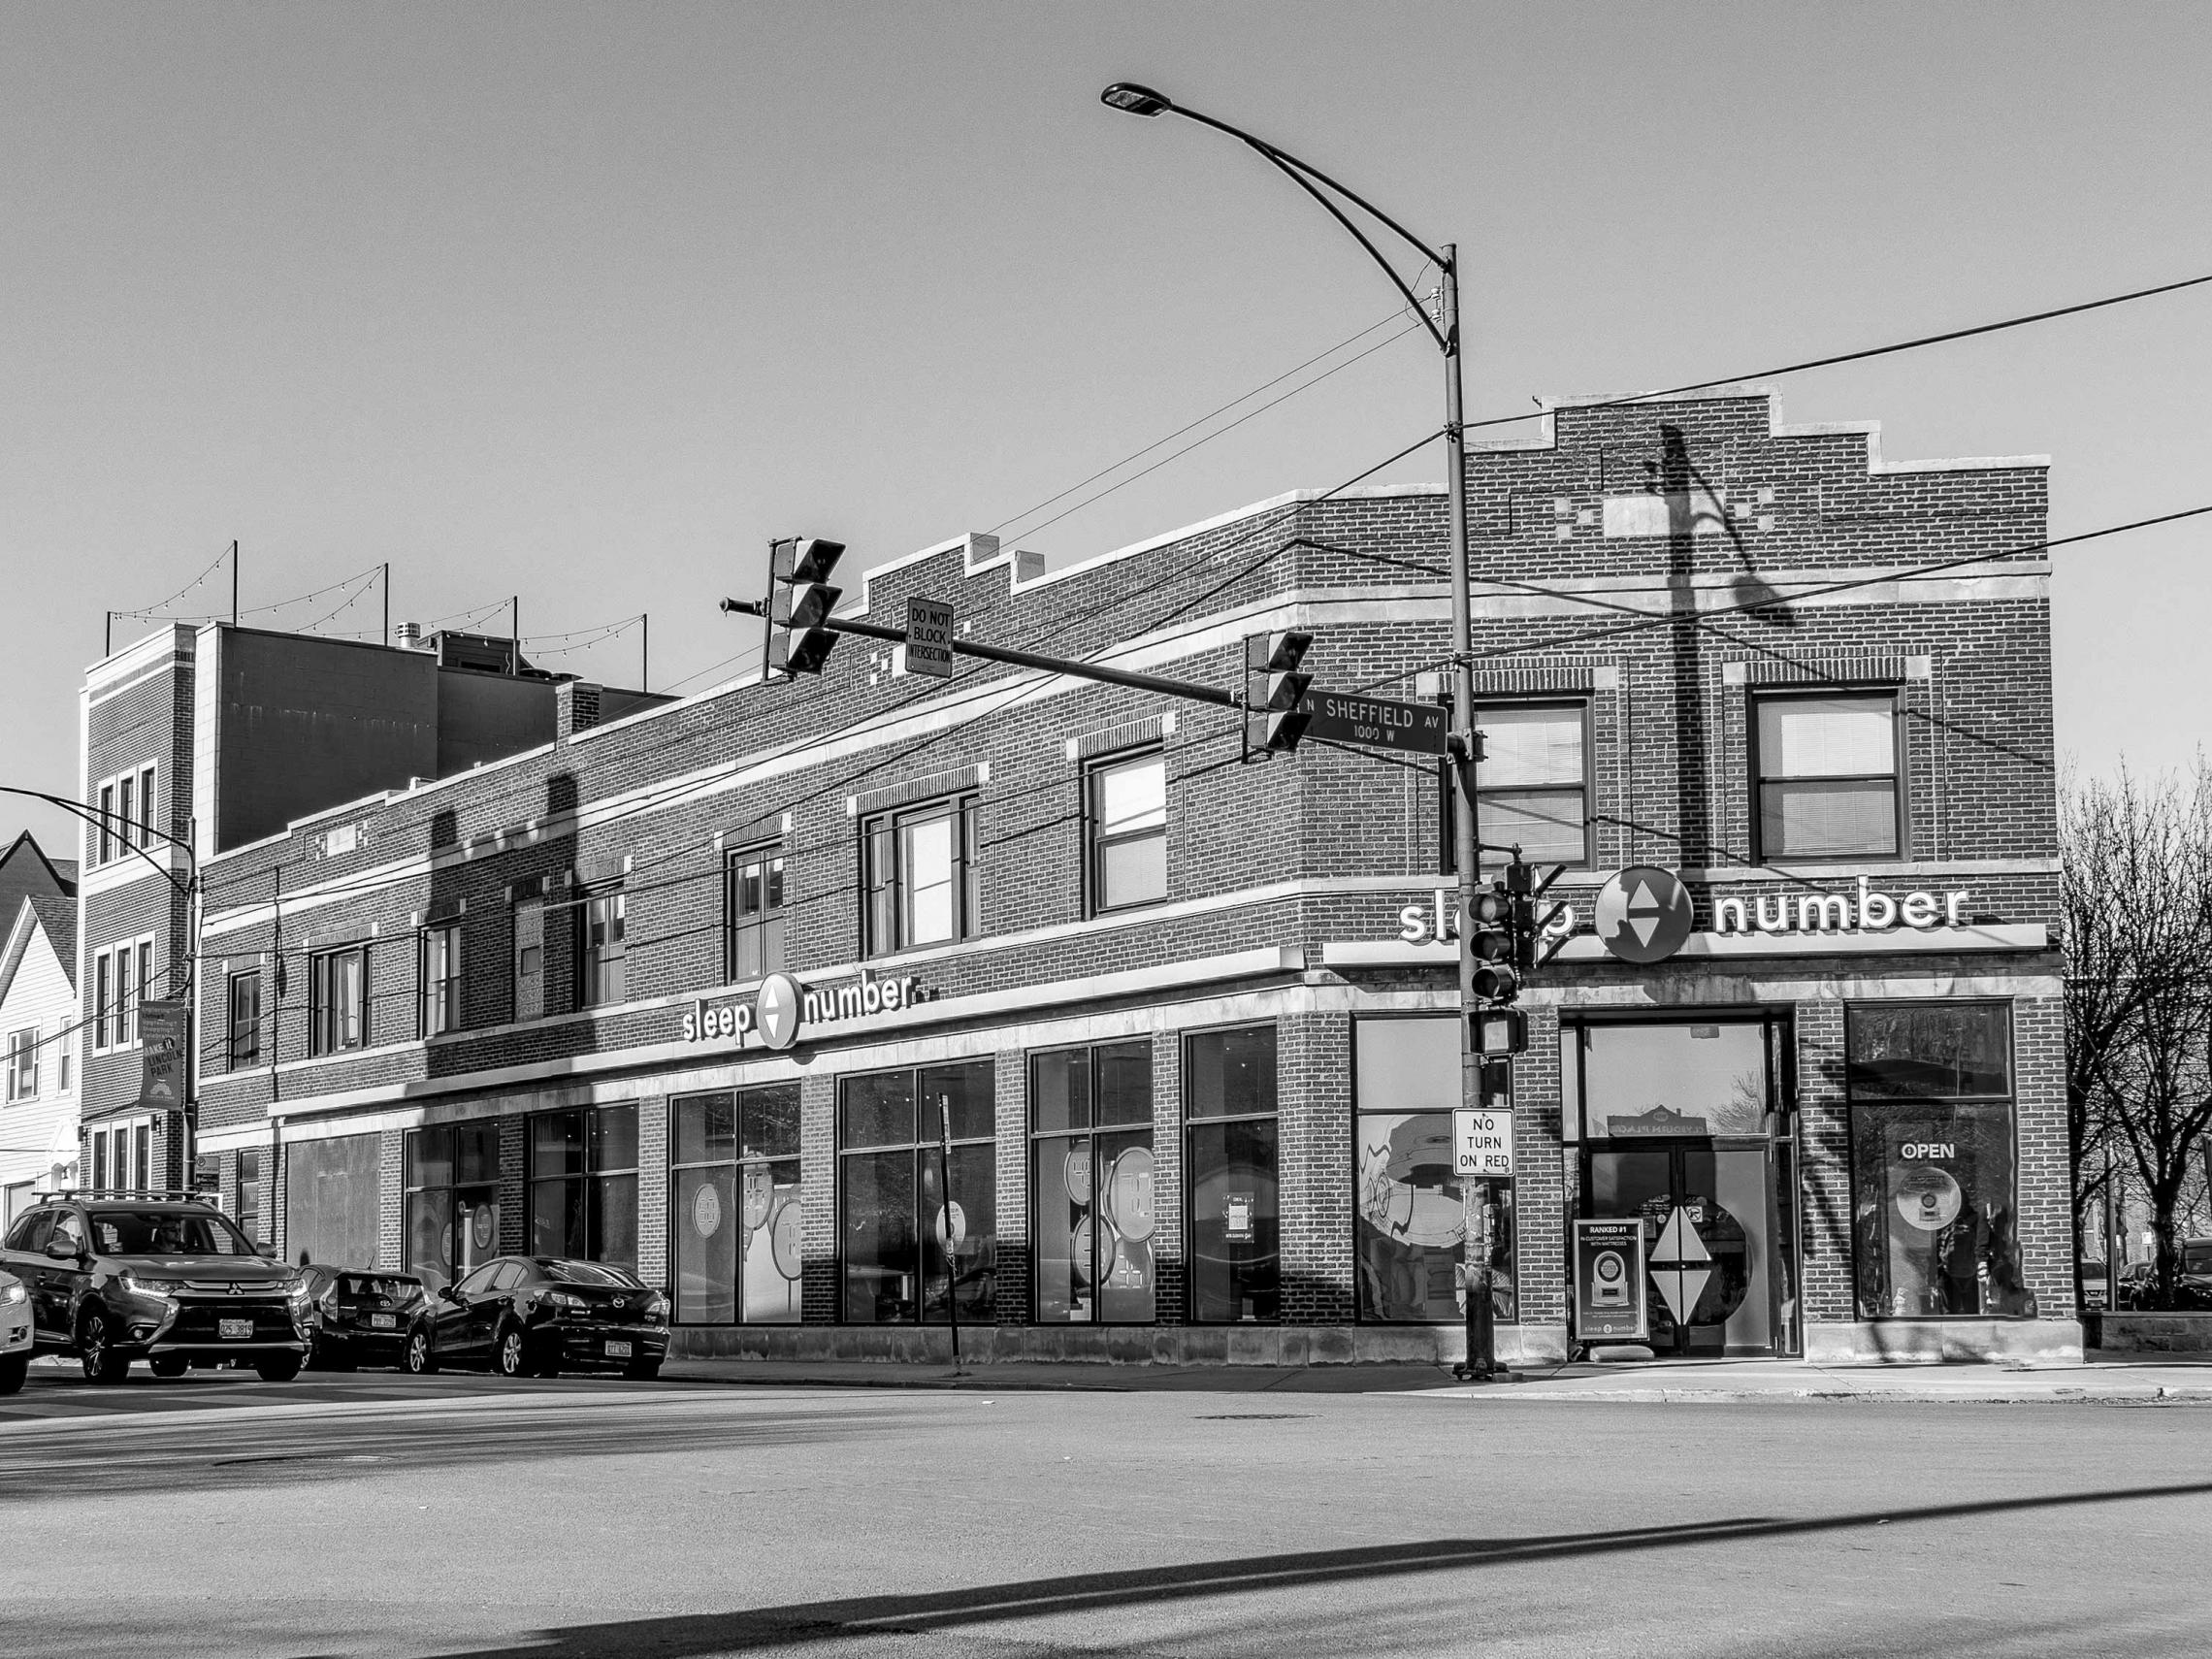 1801 N Clybourn Avenue in Chicago, IL